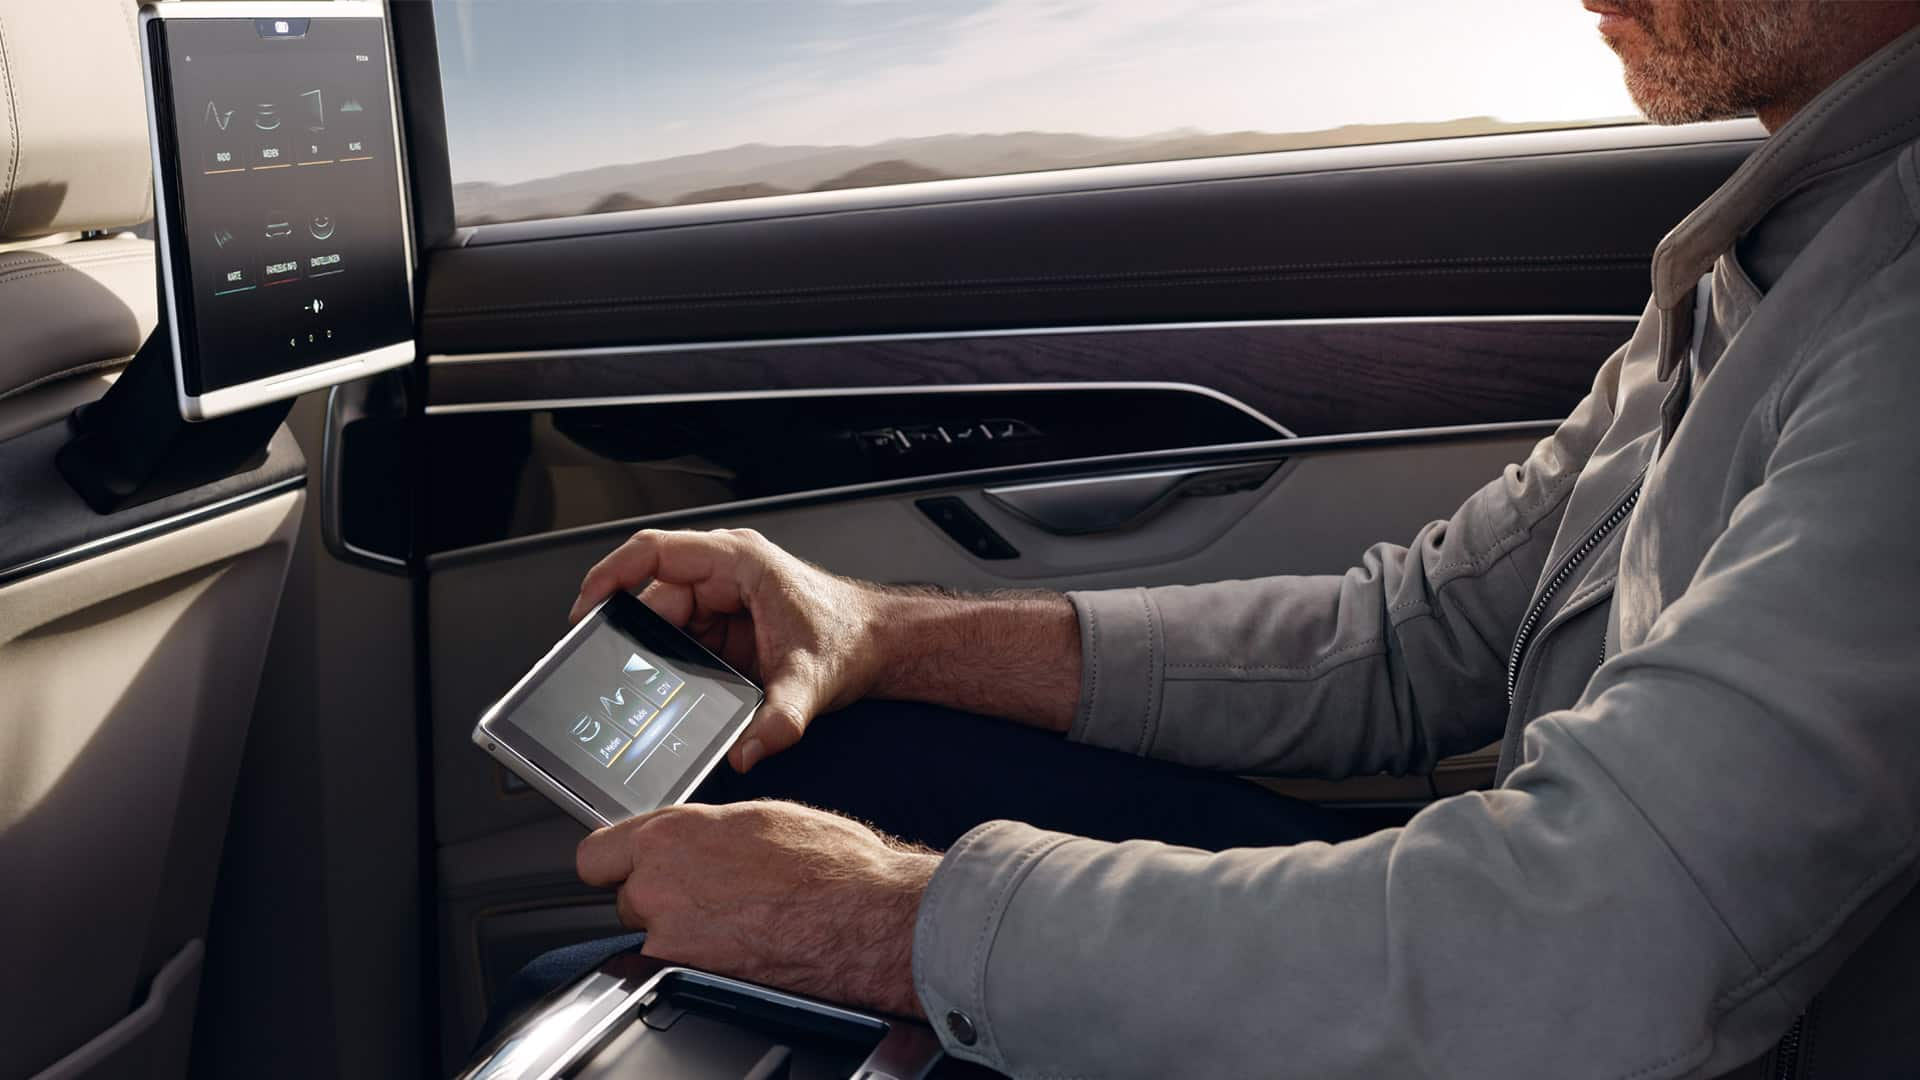 The new audi a8 audi jamaica rear seat remote important settings and media functions can be controlled from the rear via the removable 57 inch touch display in oled technology sciox Image collections